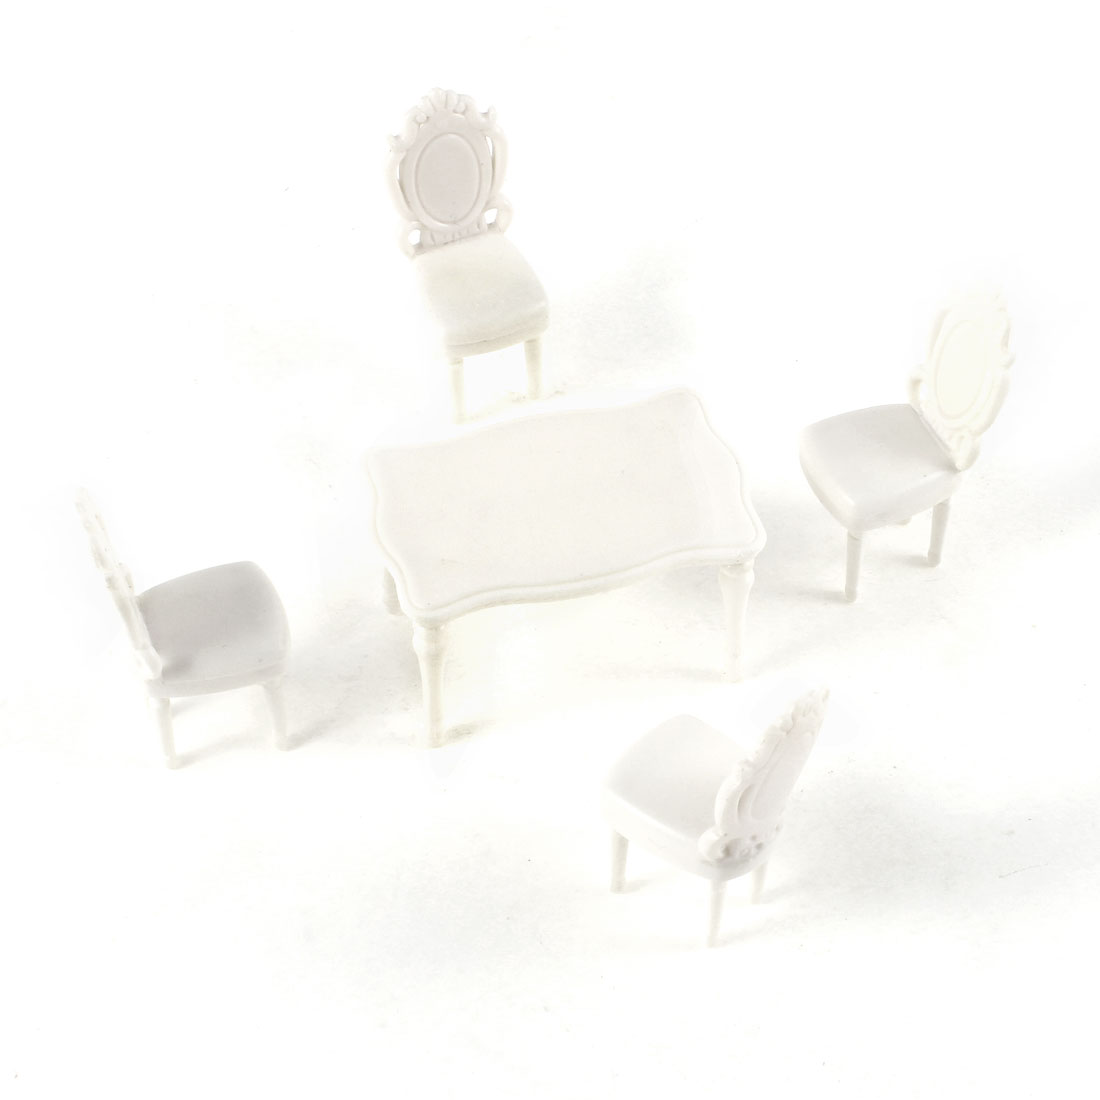 5 Pcs Unpainted Model Square Table Chairs for Indoor and Living Room Layout